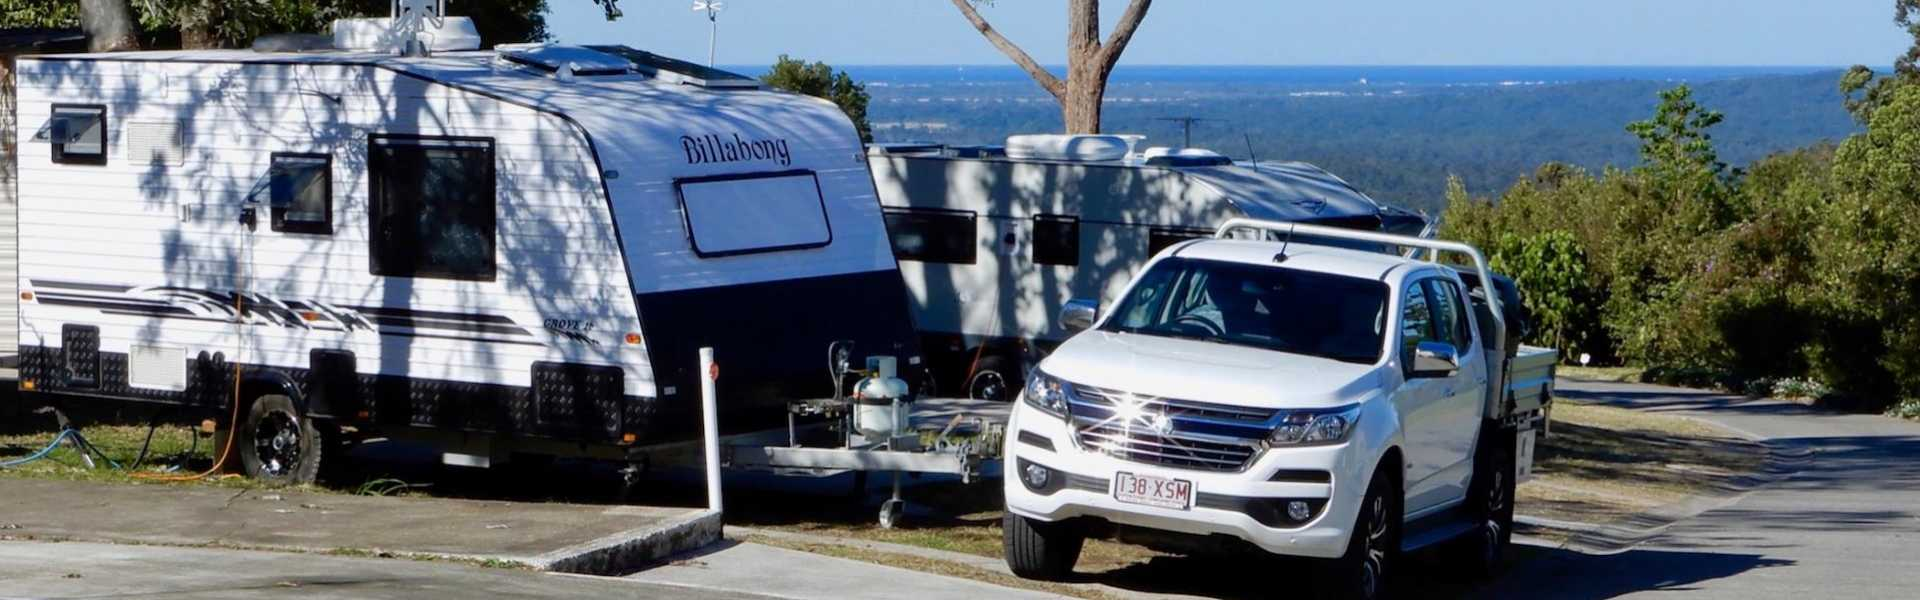 Kui Parks, Ocean View Caravan and Tourist Park, Landsborough, Sites